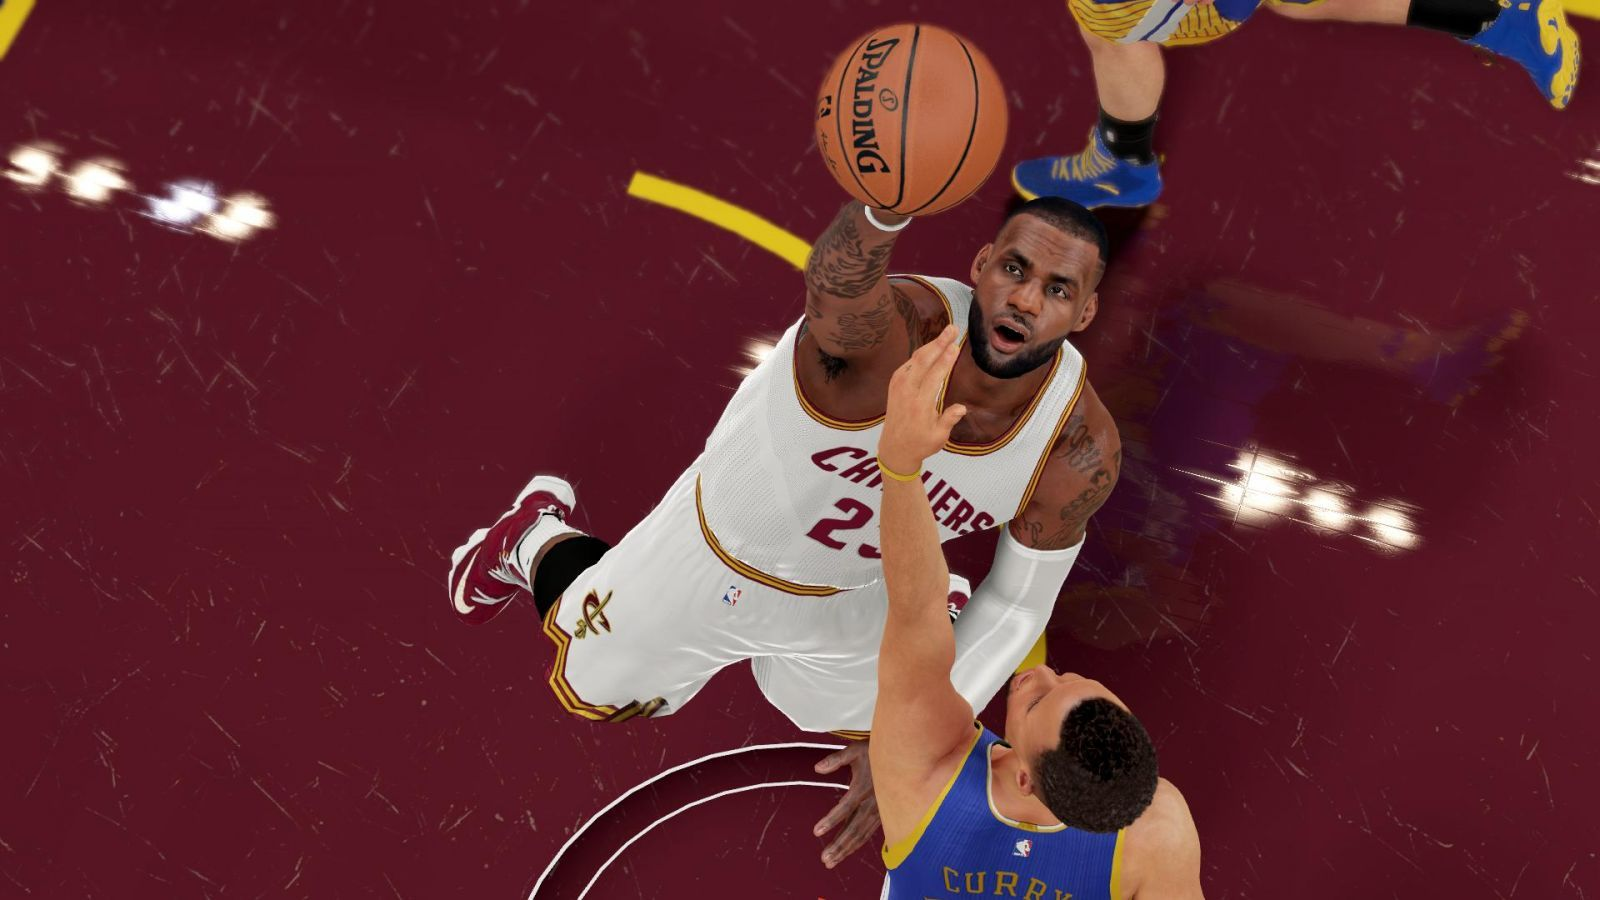 NBA 2K17 Tips On Getting Offensive Boards When You Have A Slow Player